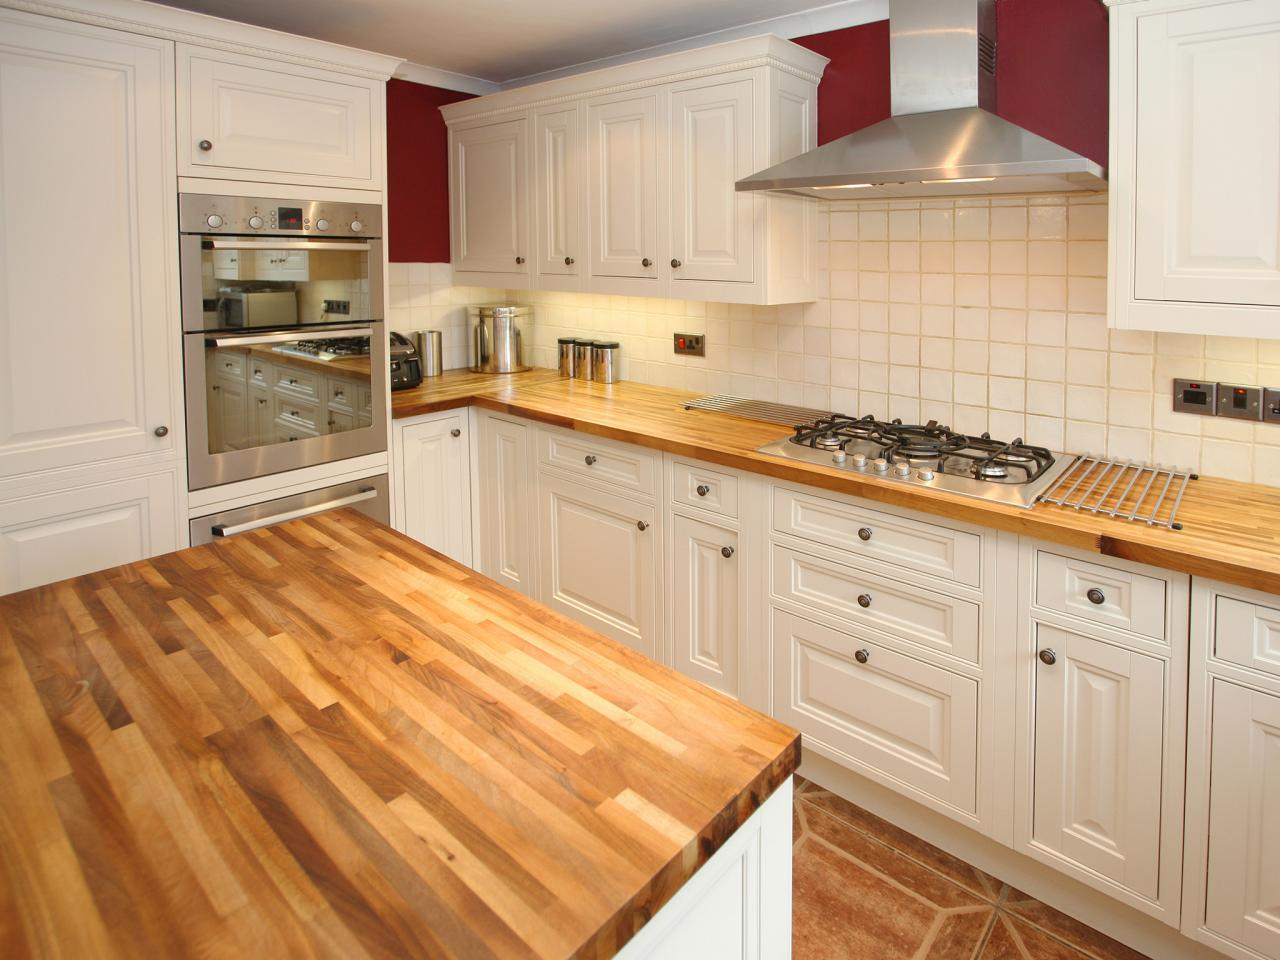 Kitchen Countertops Wood